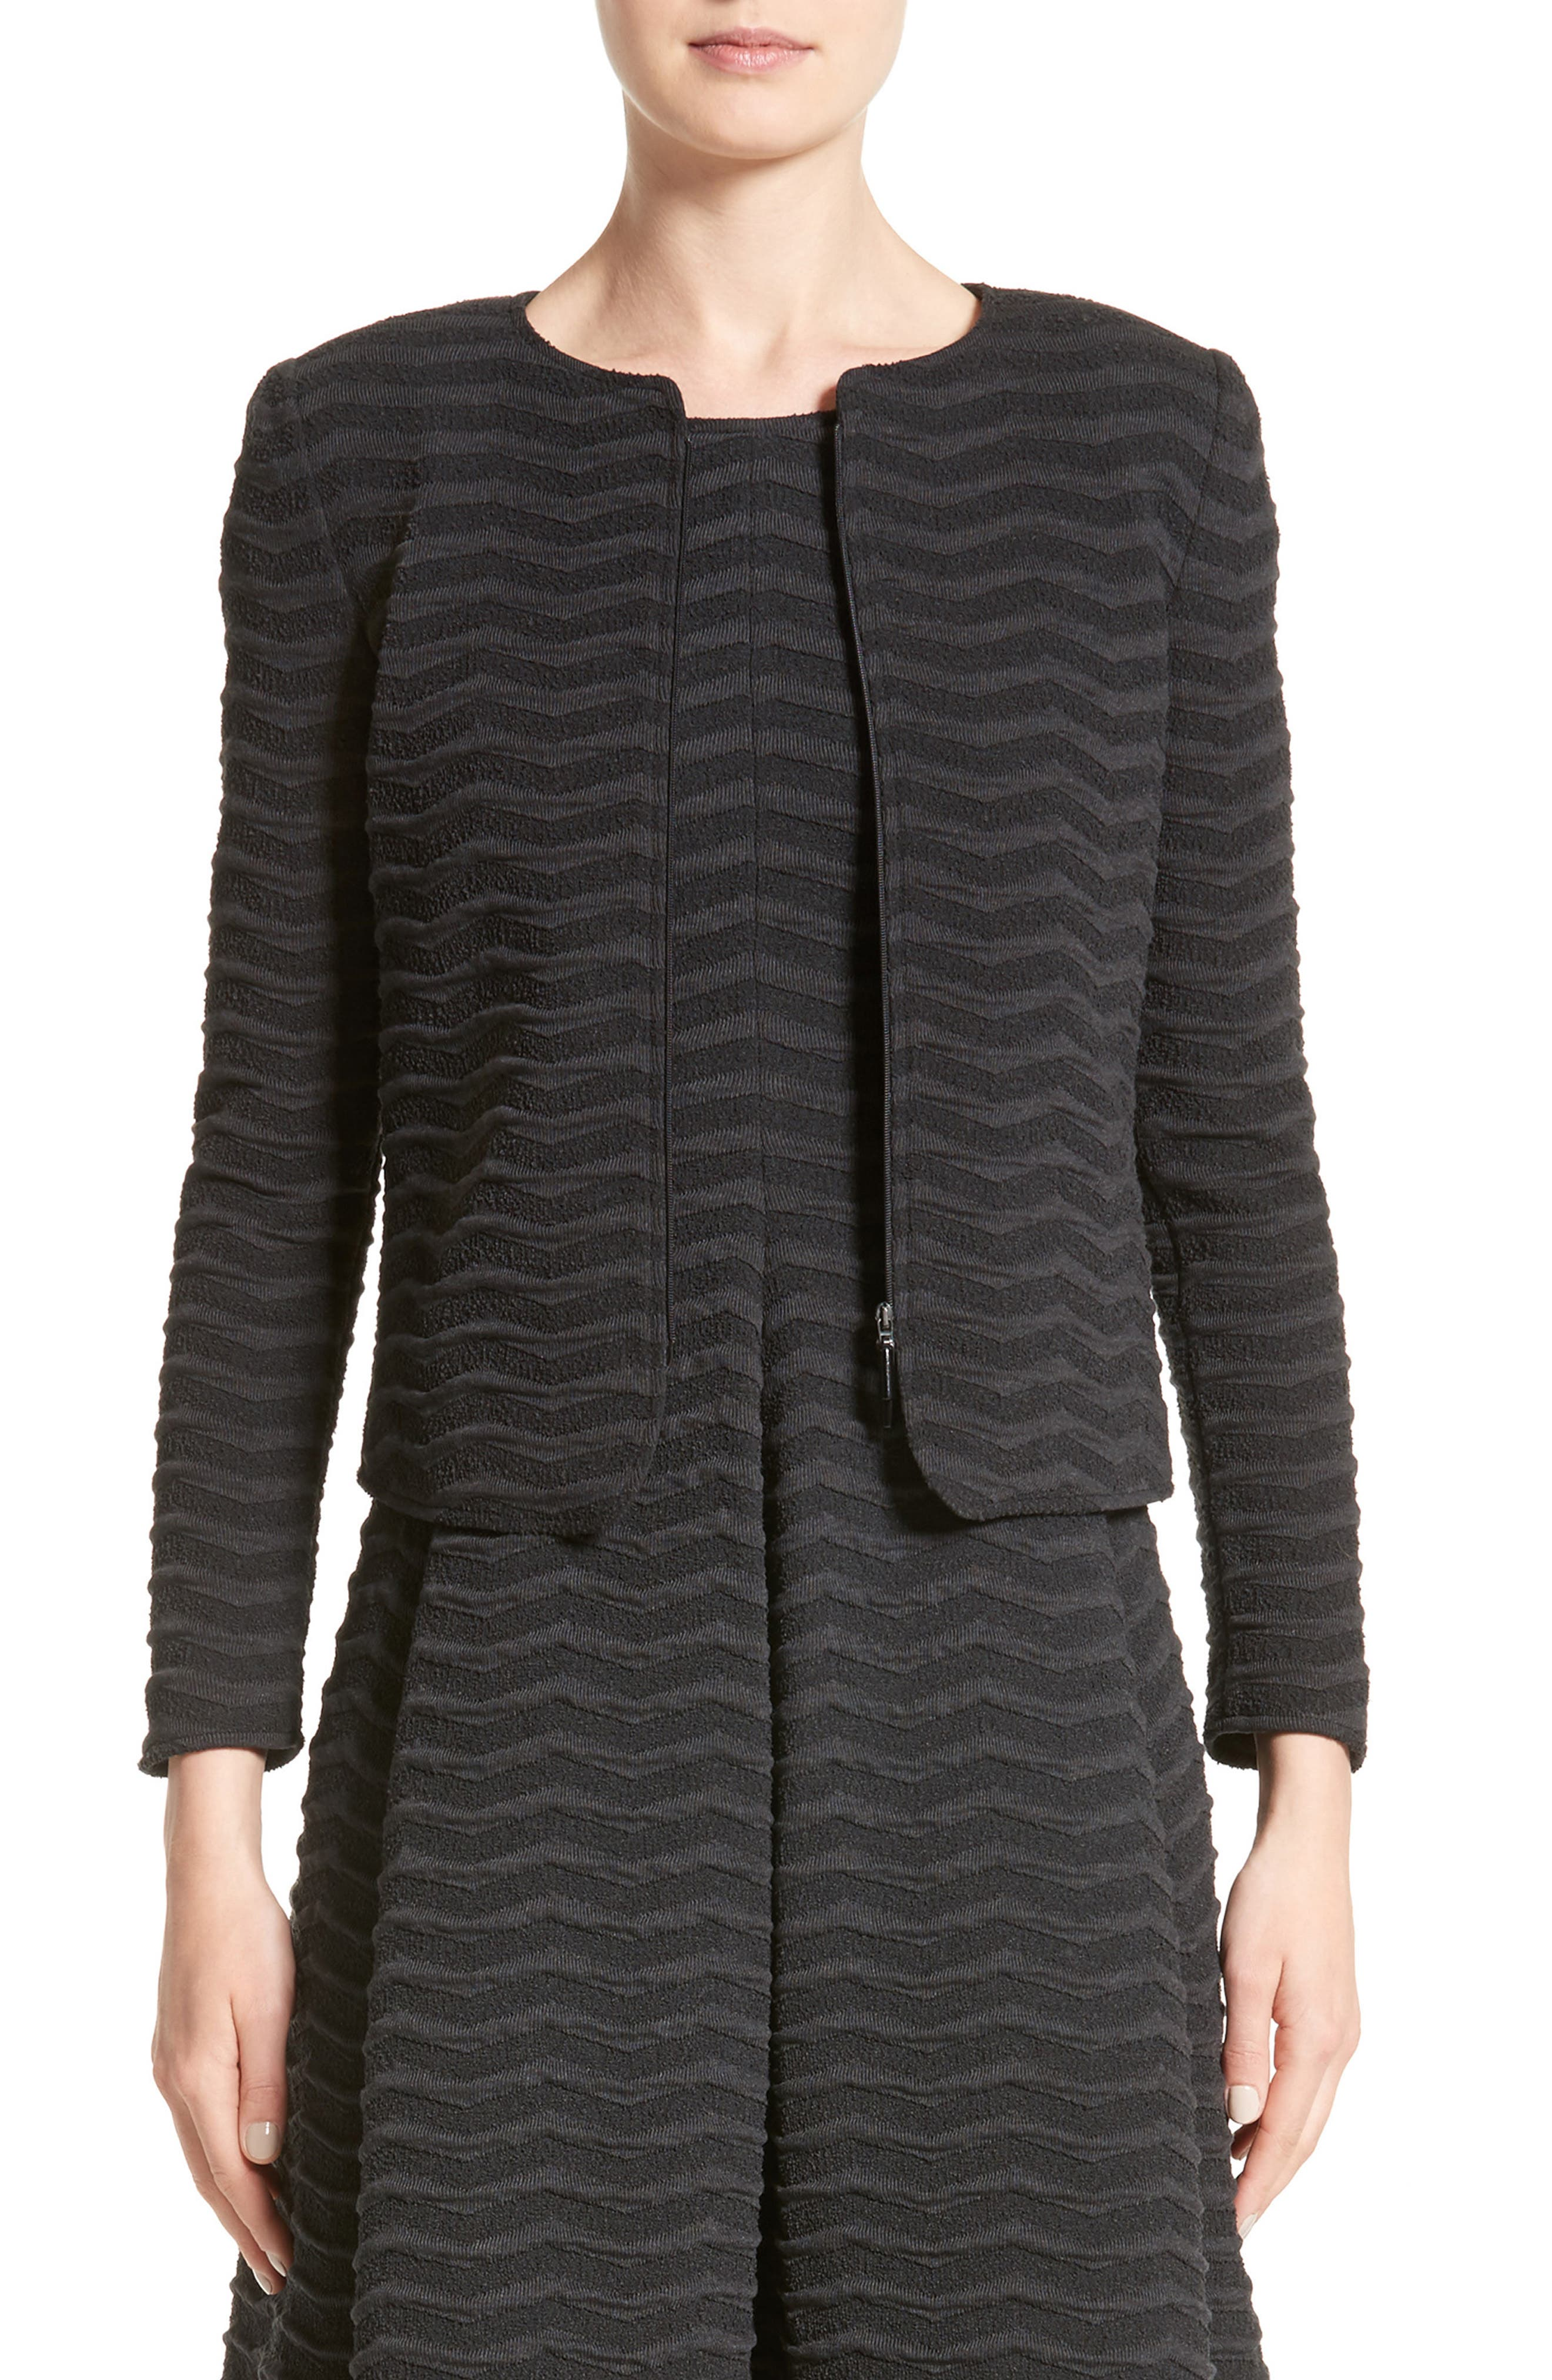 Embossed Jacquard Jersey Jacket,                         Main,                         color, 020